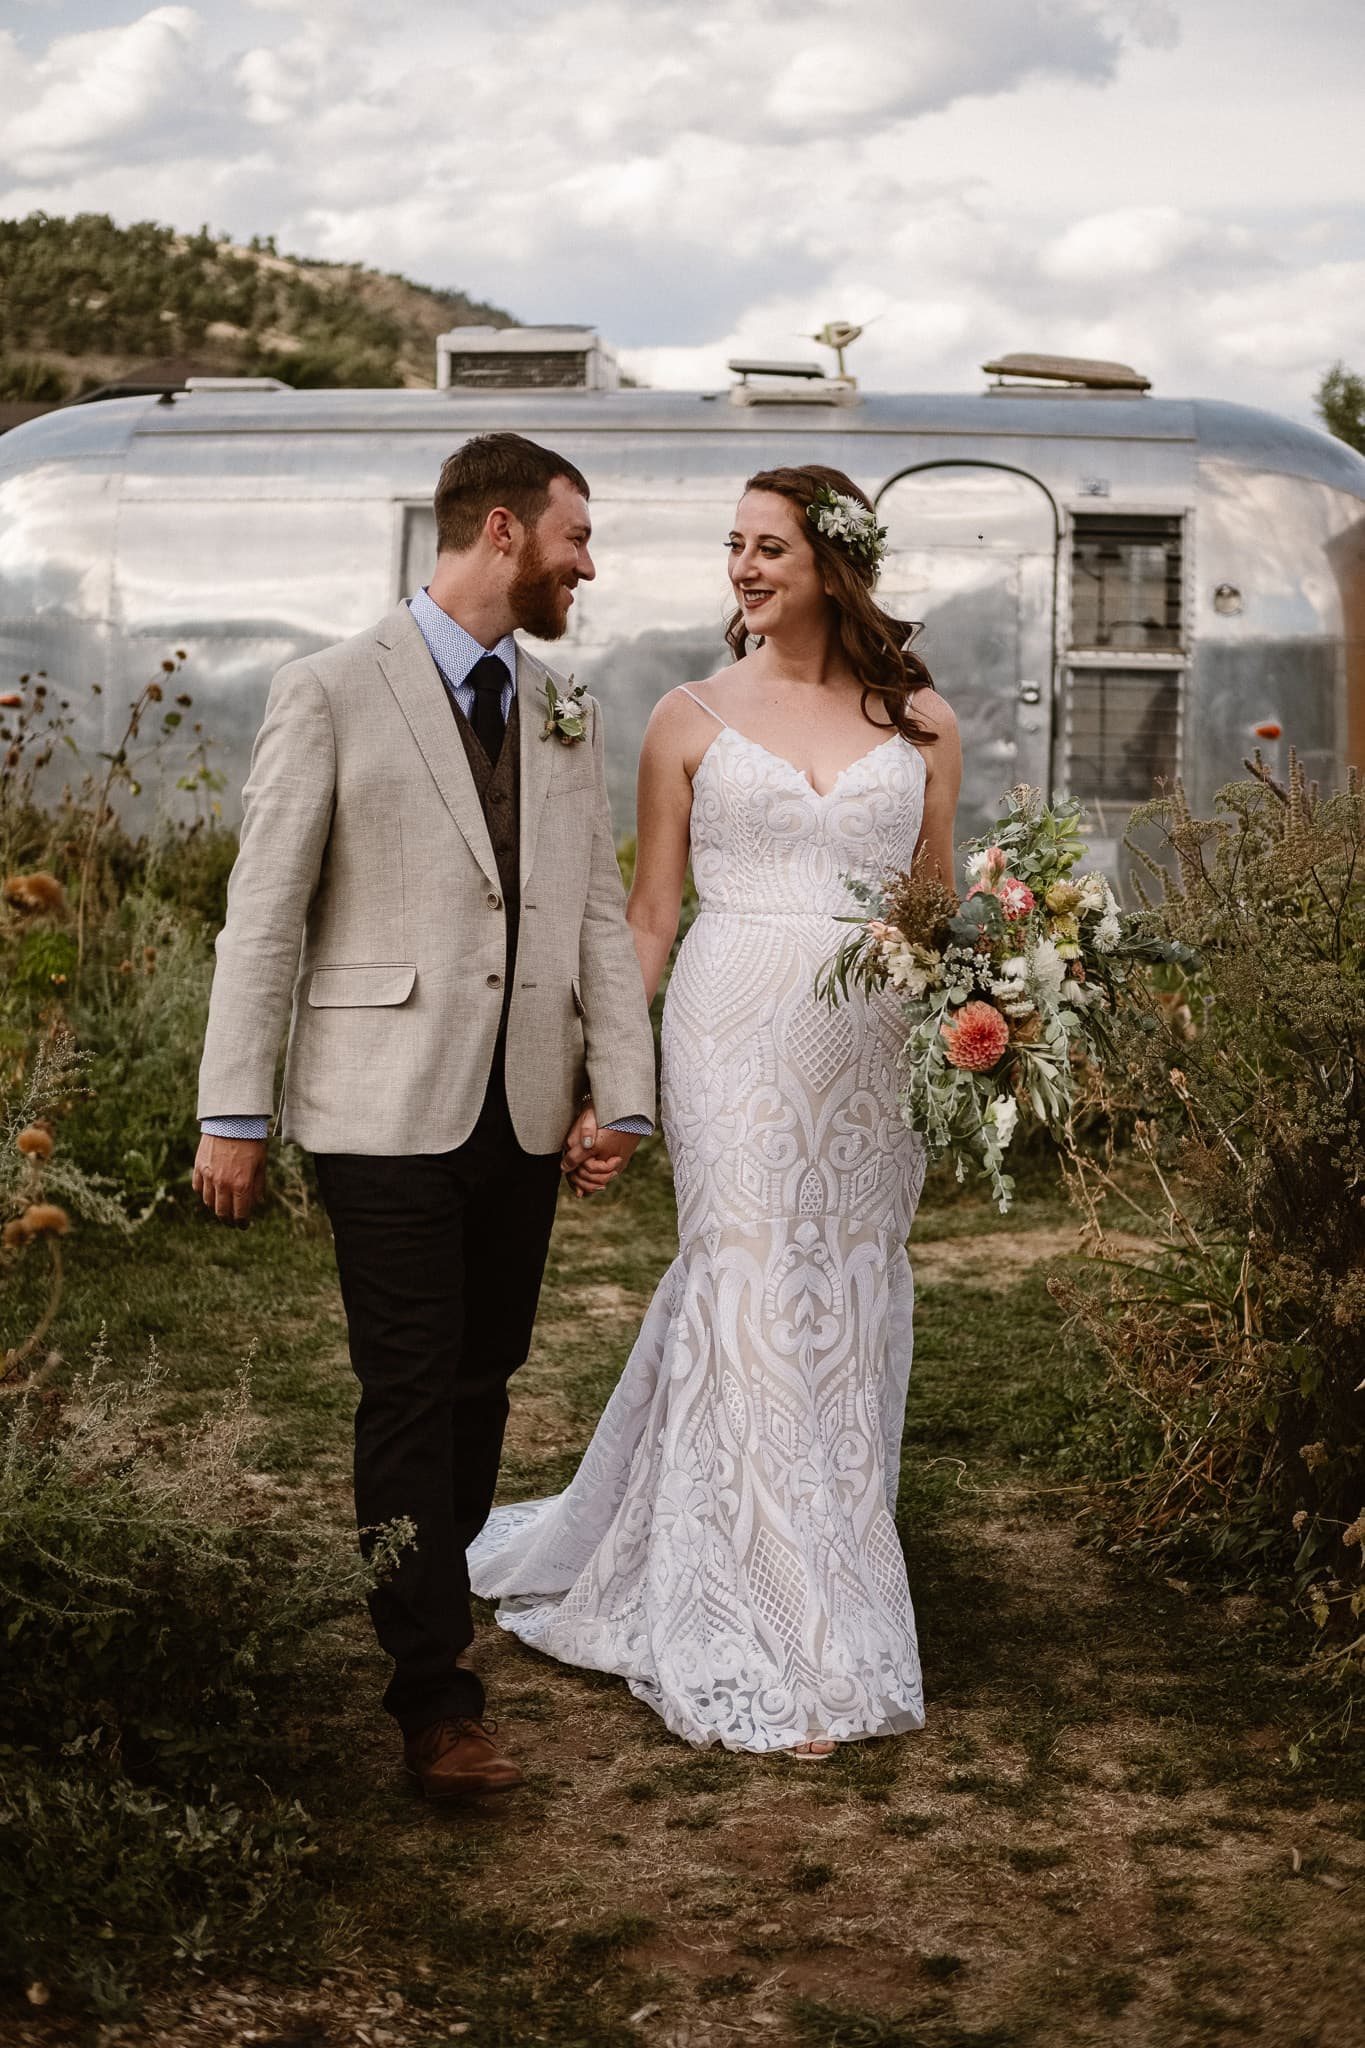 Lyons Farmette wedding photographer, Colorado intimate wedding photographer, bride and groom photos walking by airstream